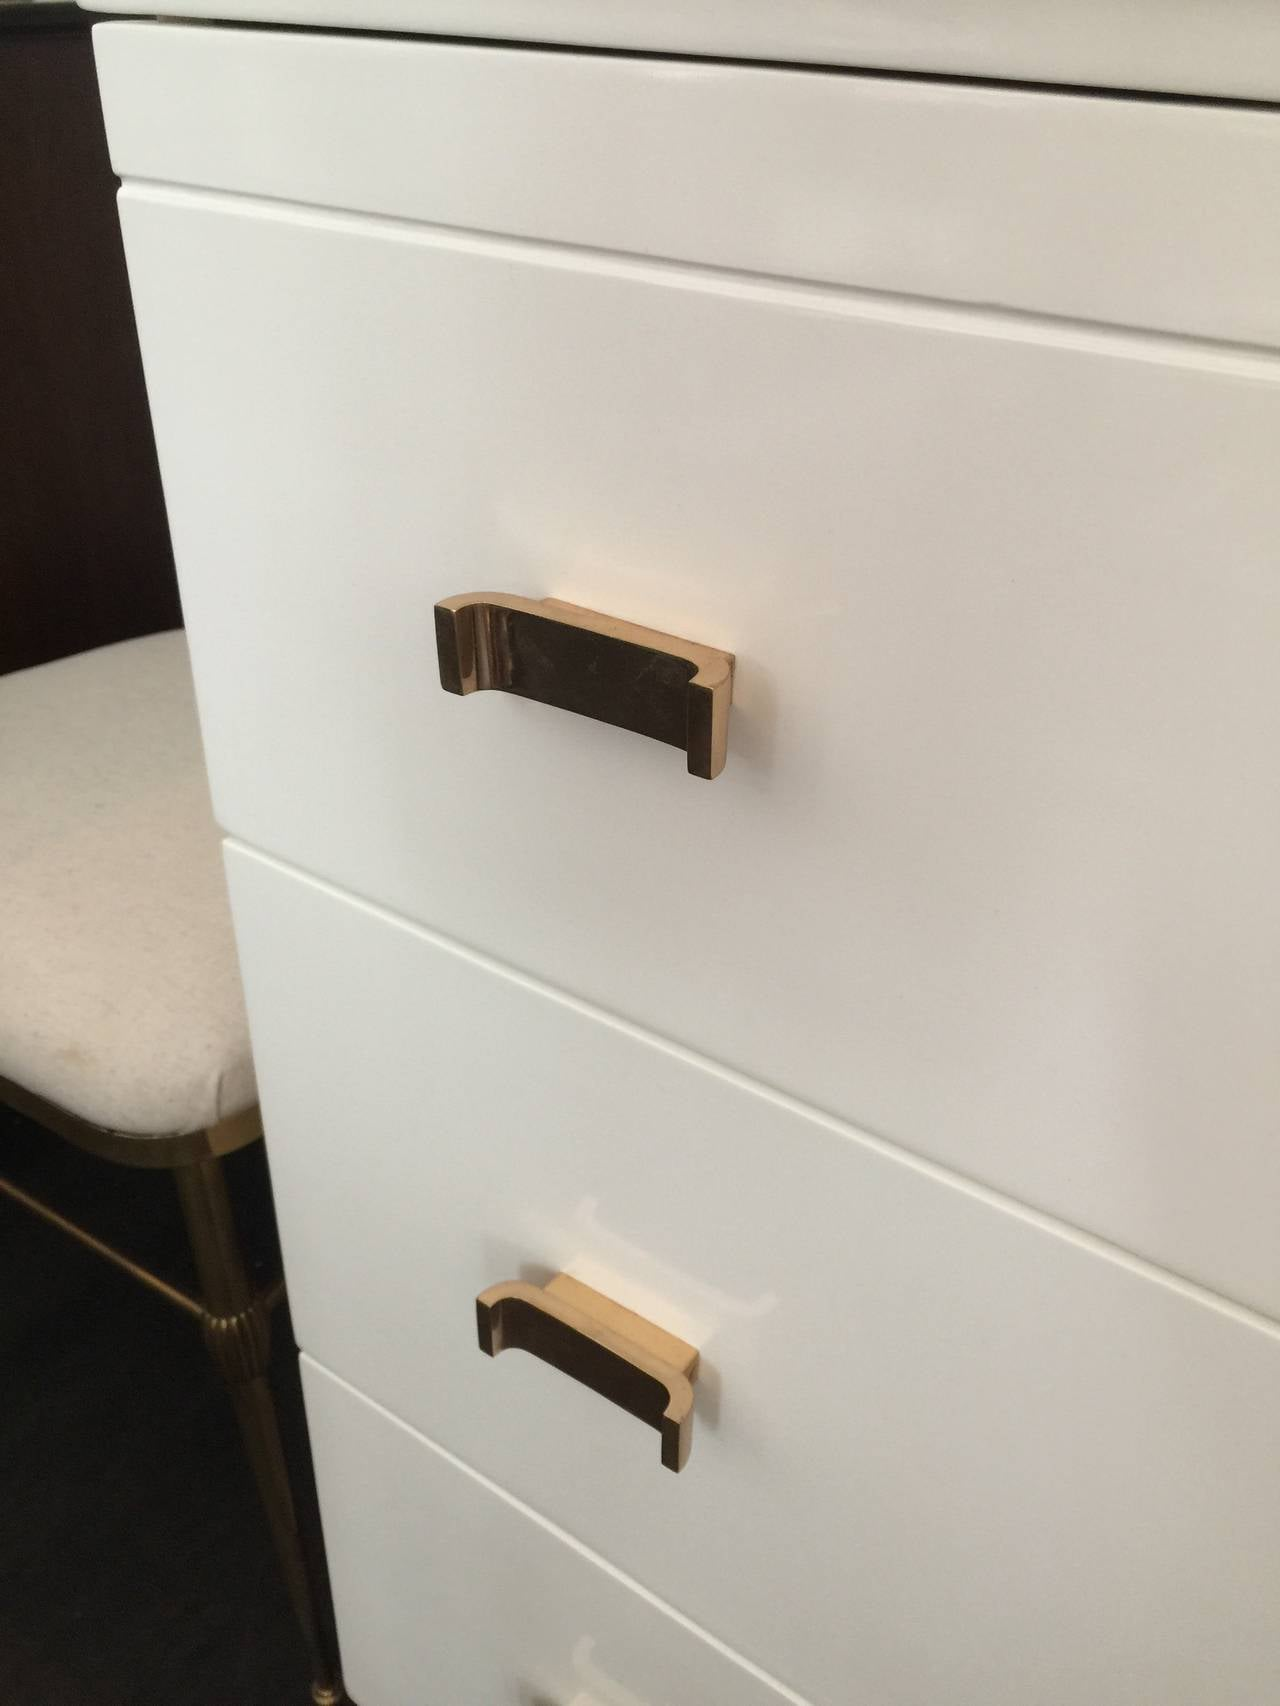 Manufactured and labelled by Amodec, this important Art Deco piece displays simple lines and elegant polished bronze hardware. Original ivory lacquer.